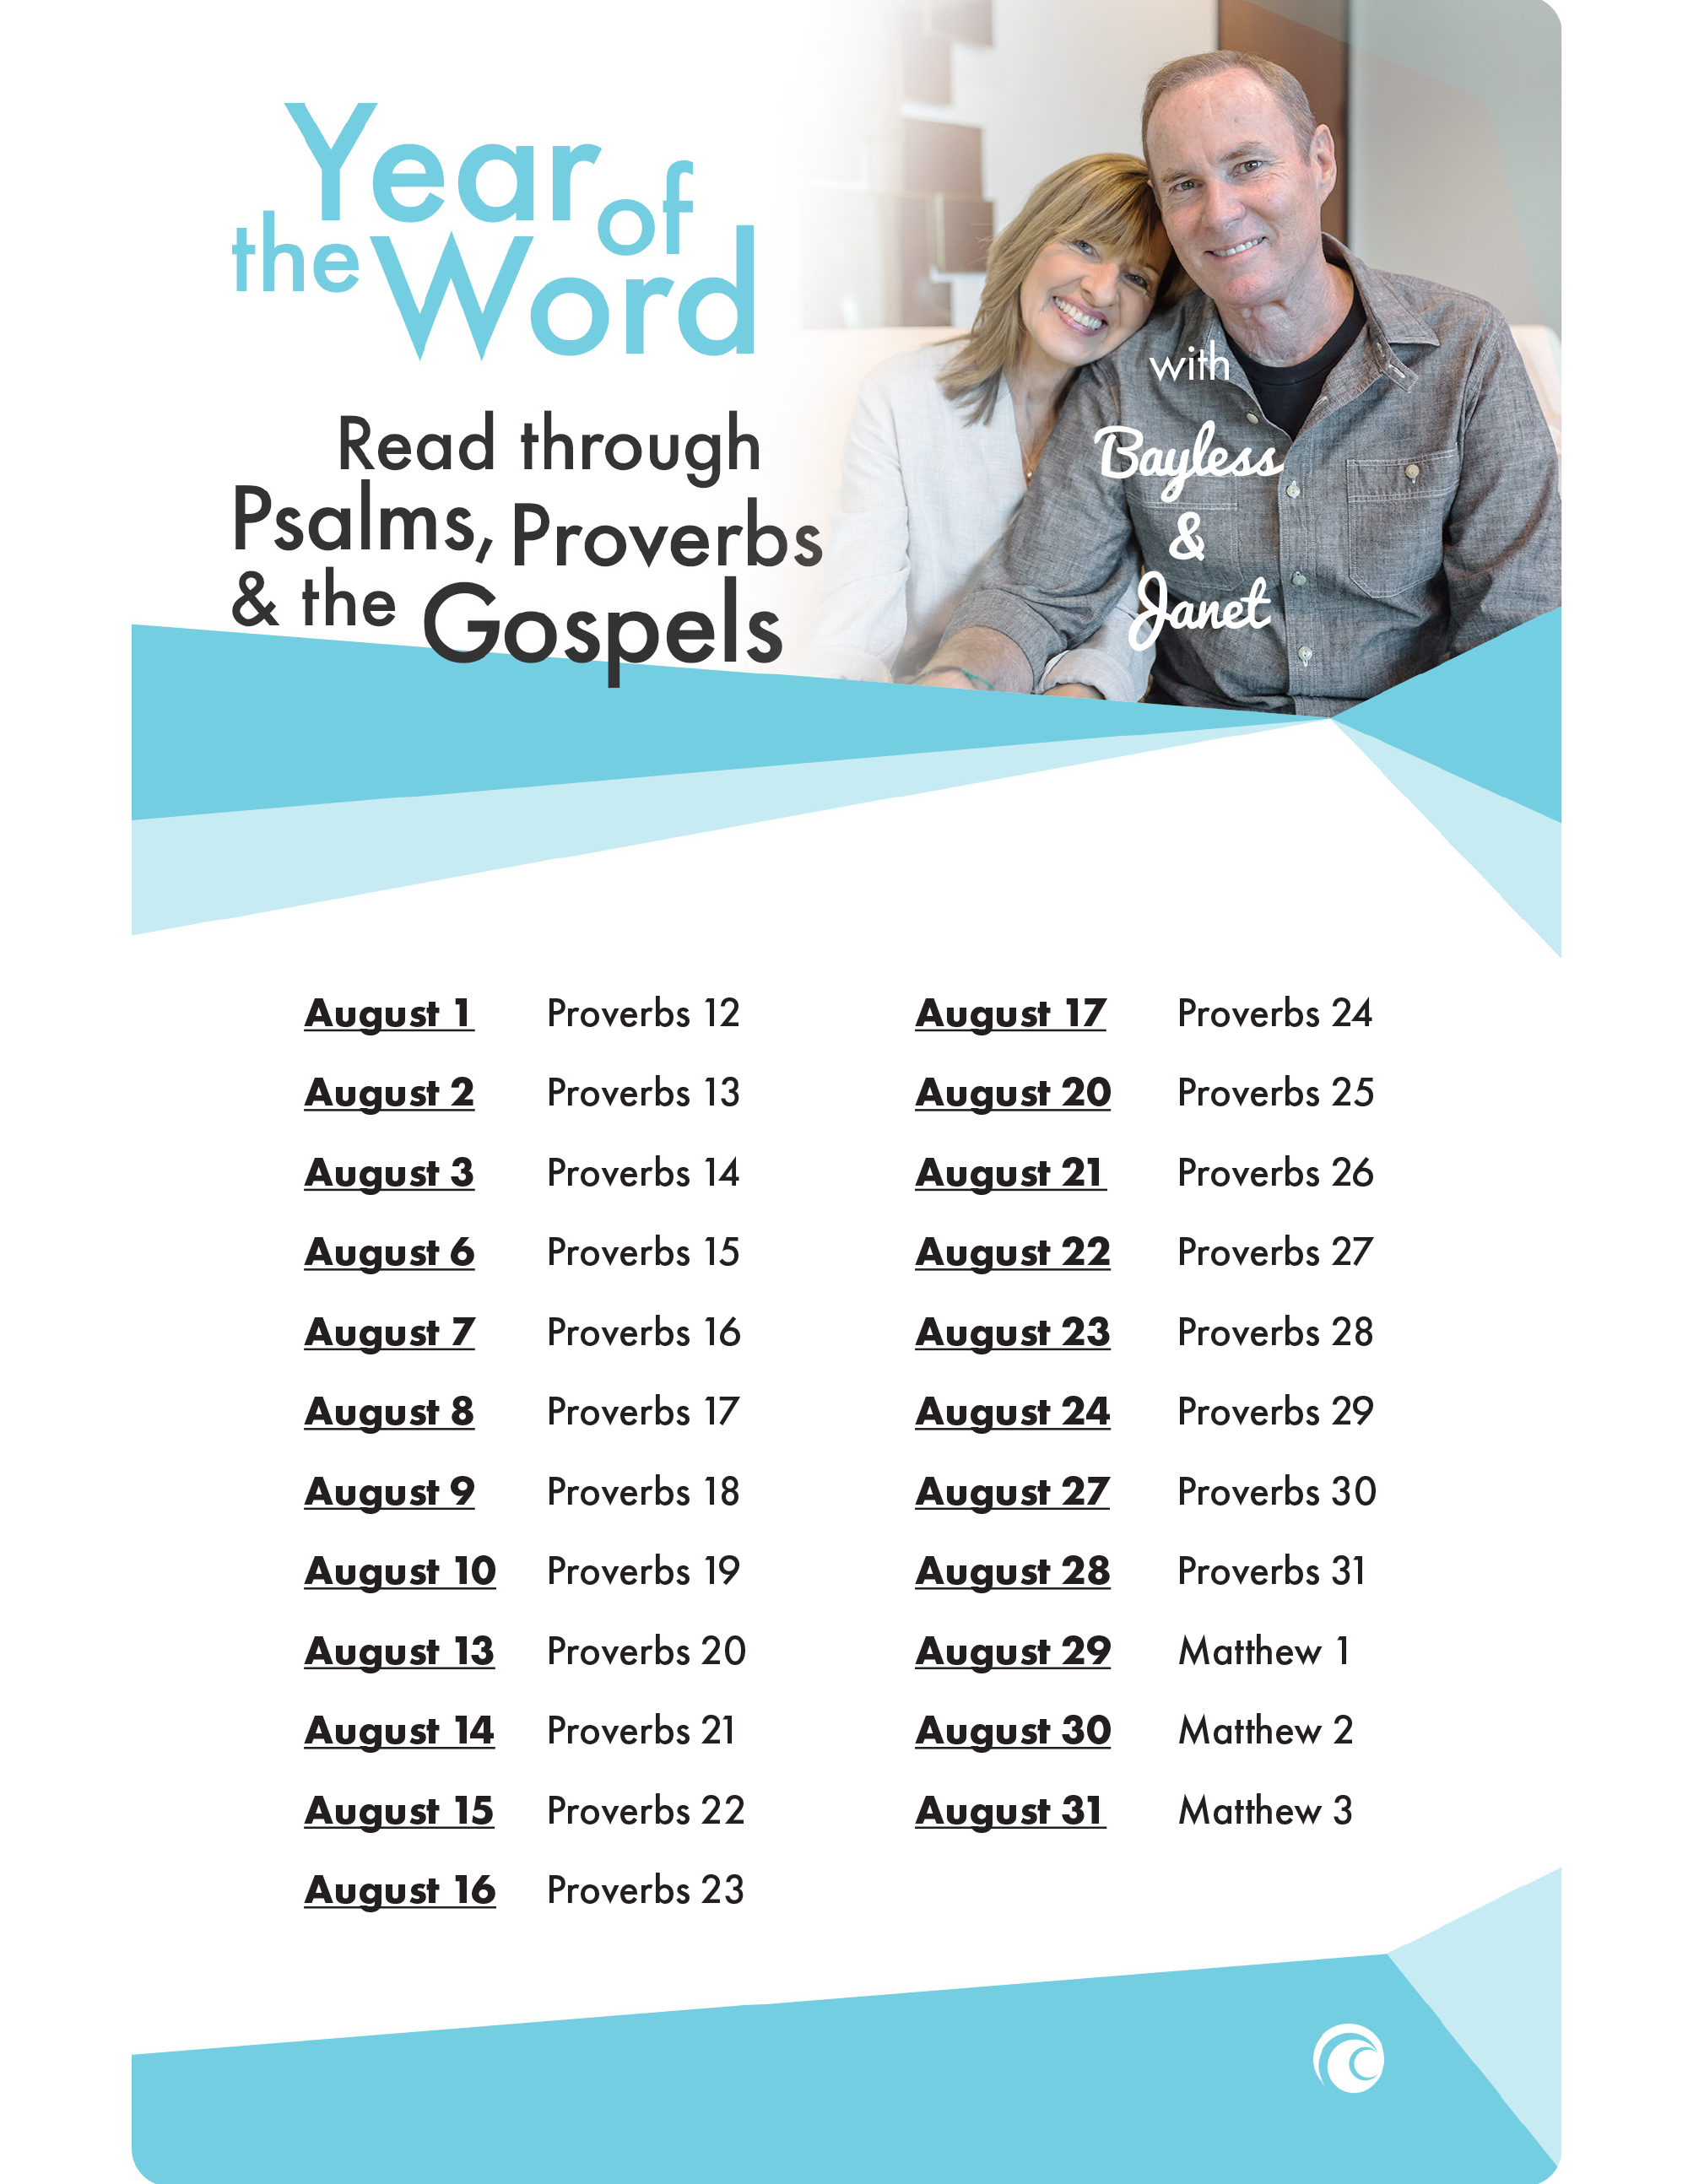 year of the word with bayless and janet read through psalms proverbs and the gospels